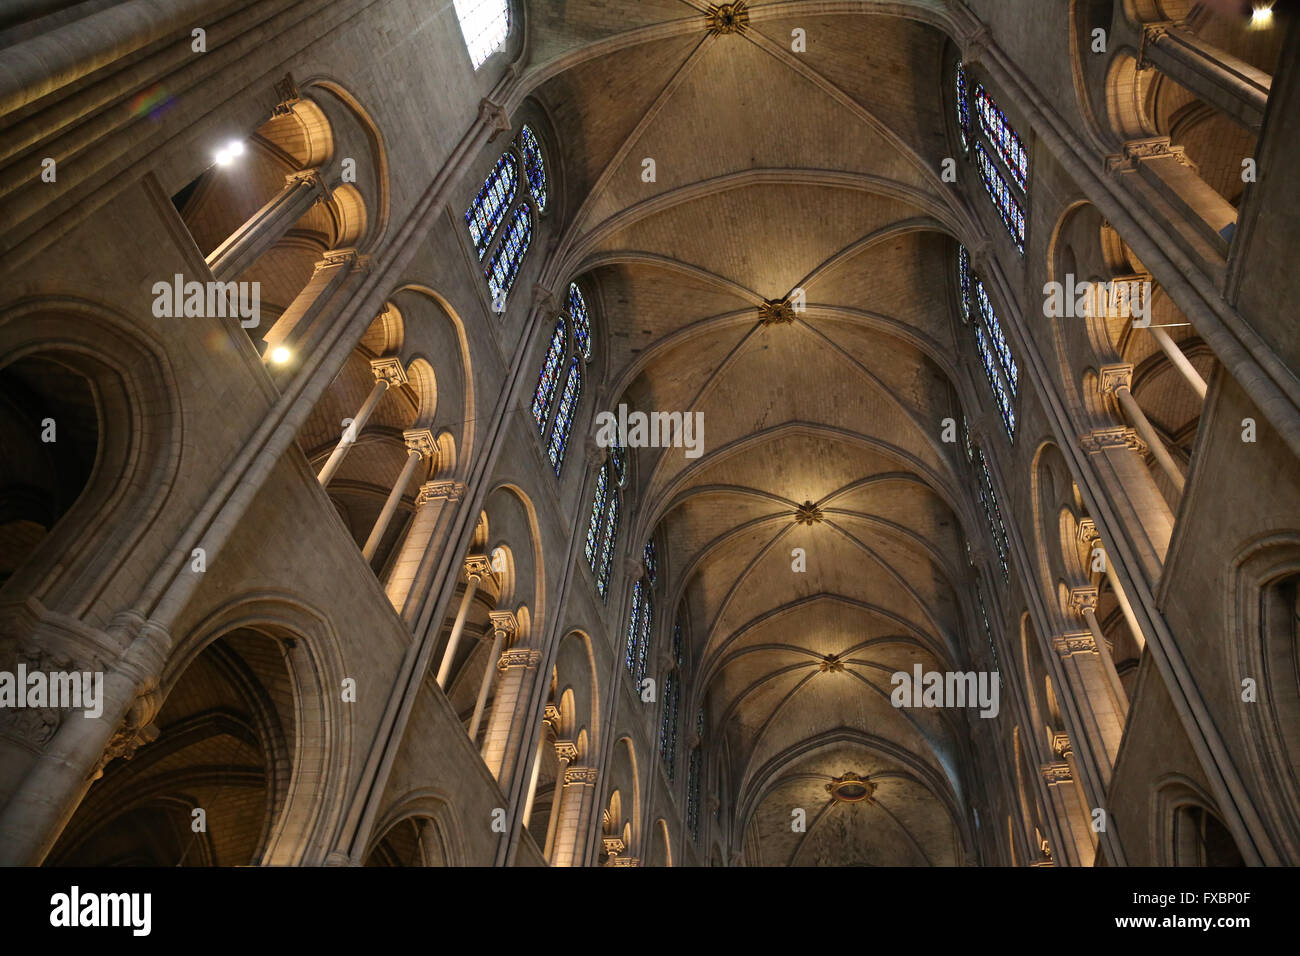 France. Paris. Cathedral of Notre- Dame. Inside. - Stock Image